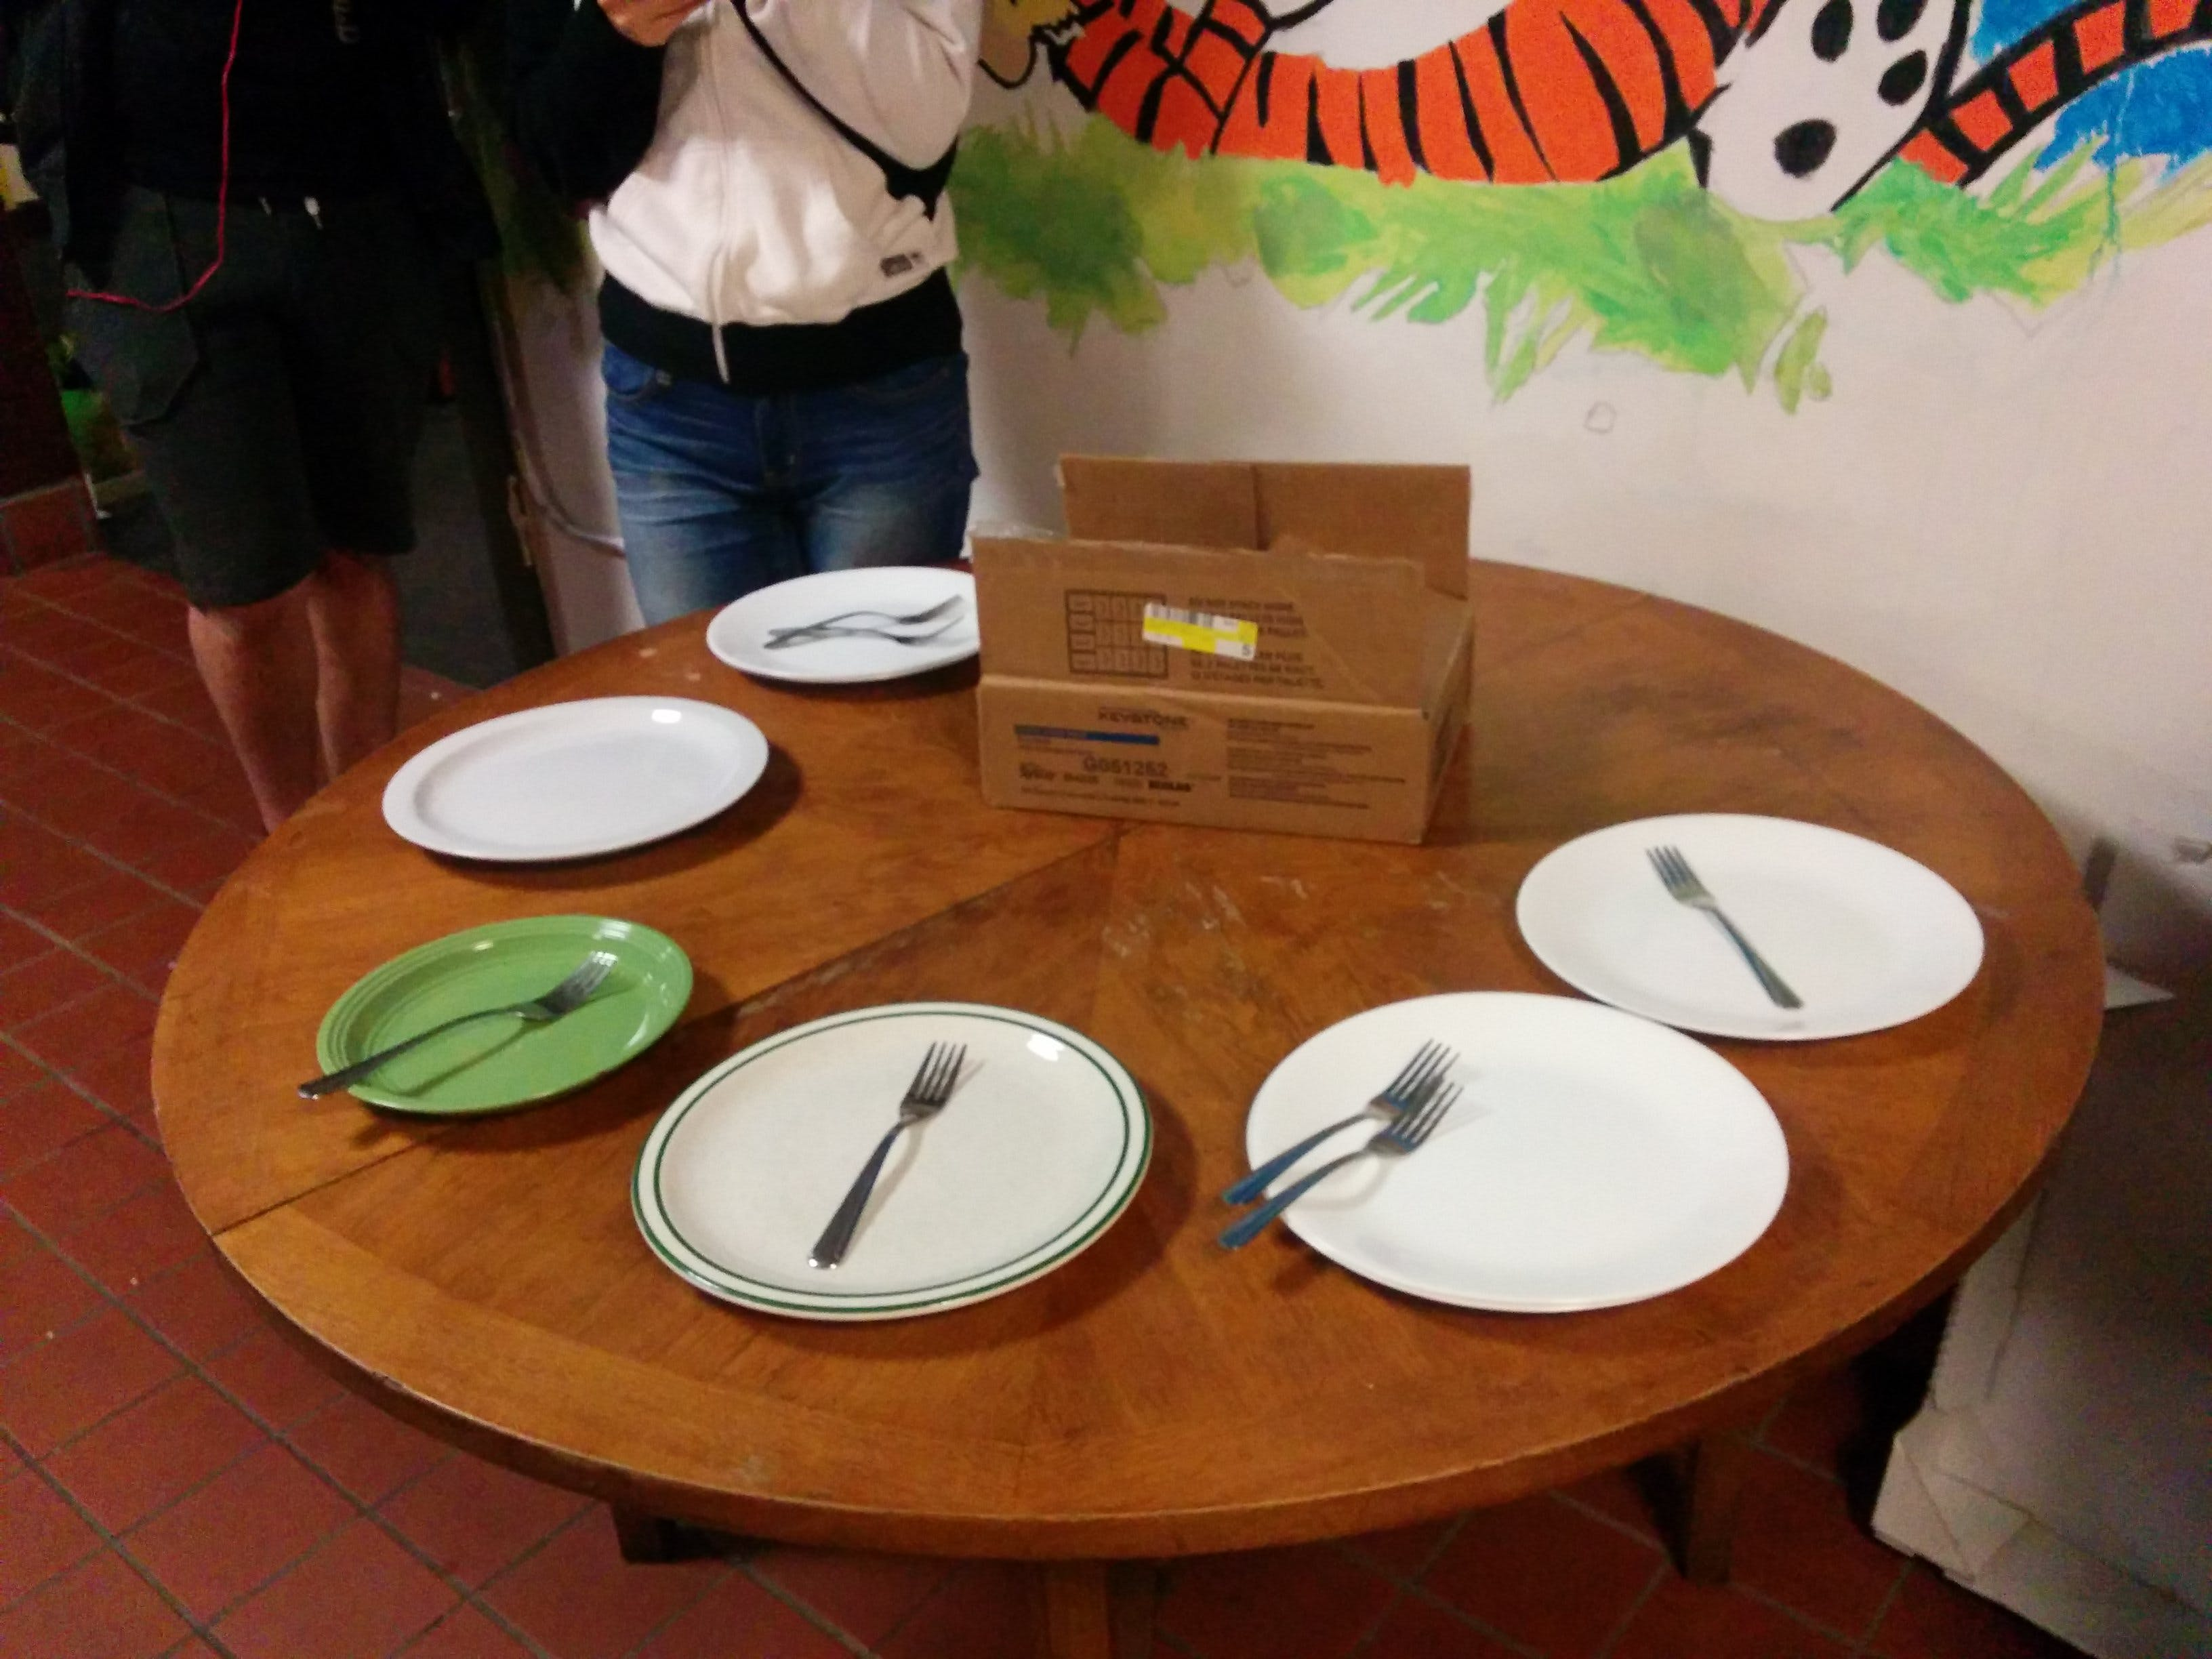 Some residents place plates to hold their spots in line